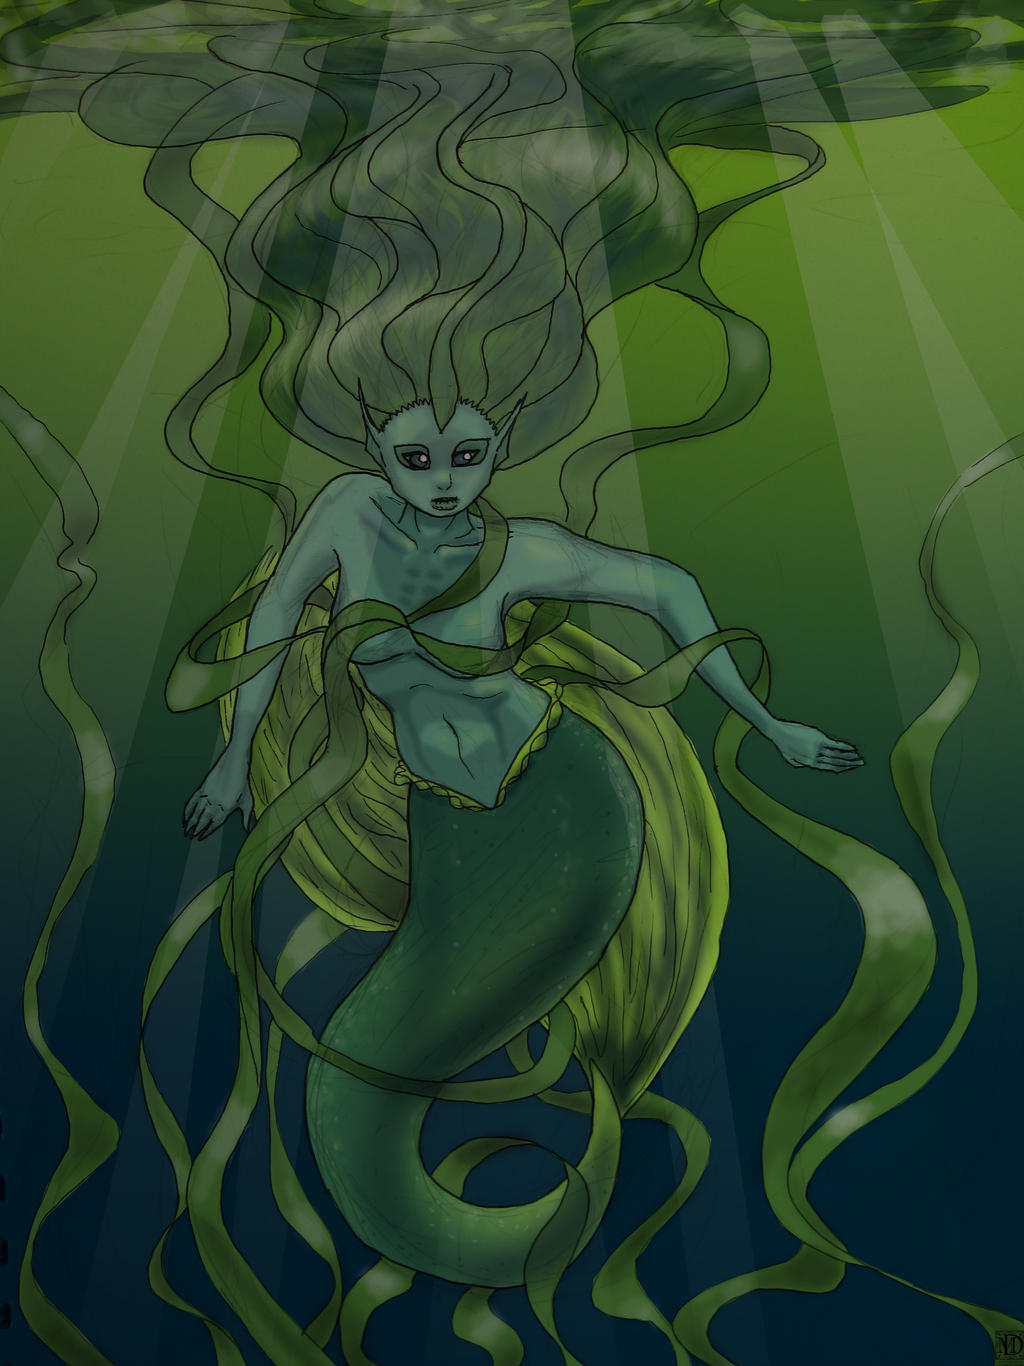 The Seaweed Woman by DeeDraws